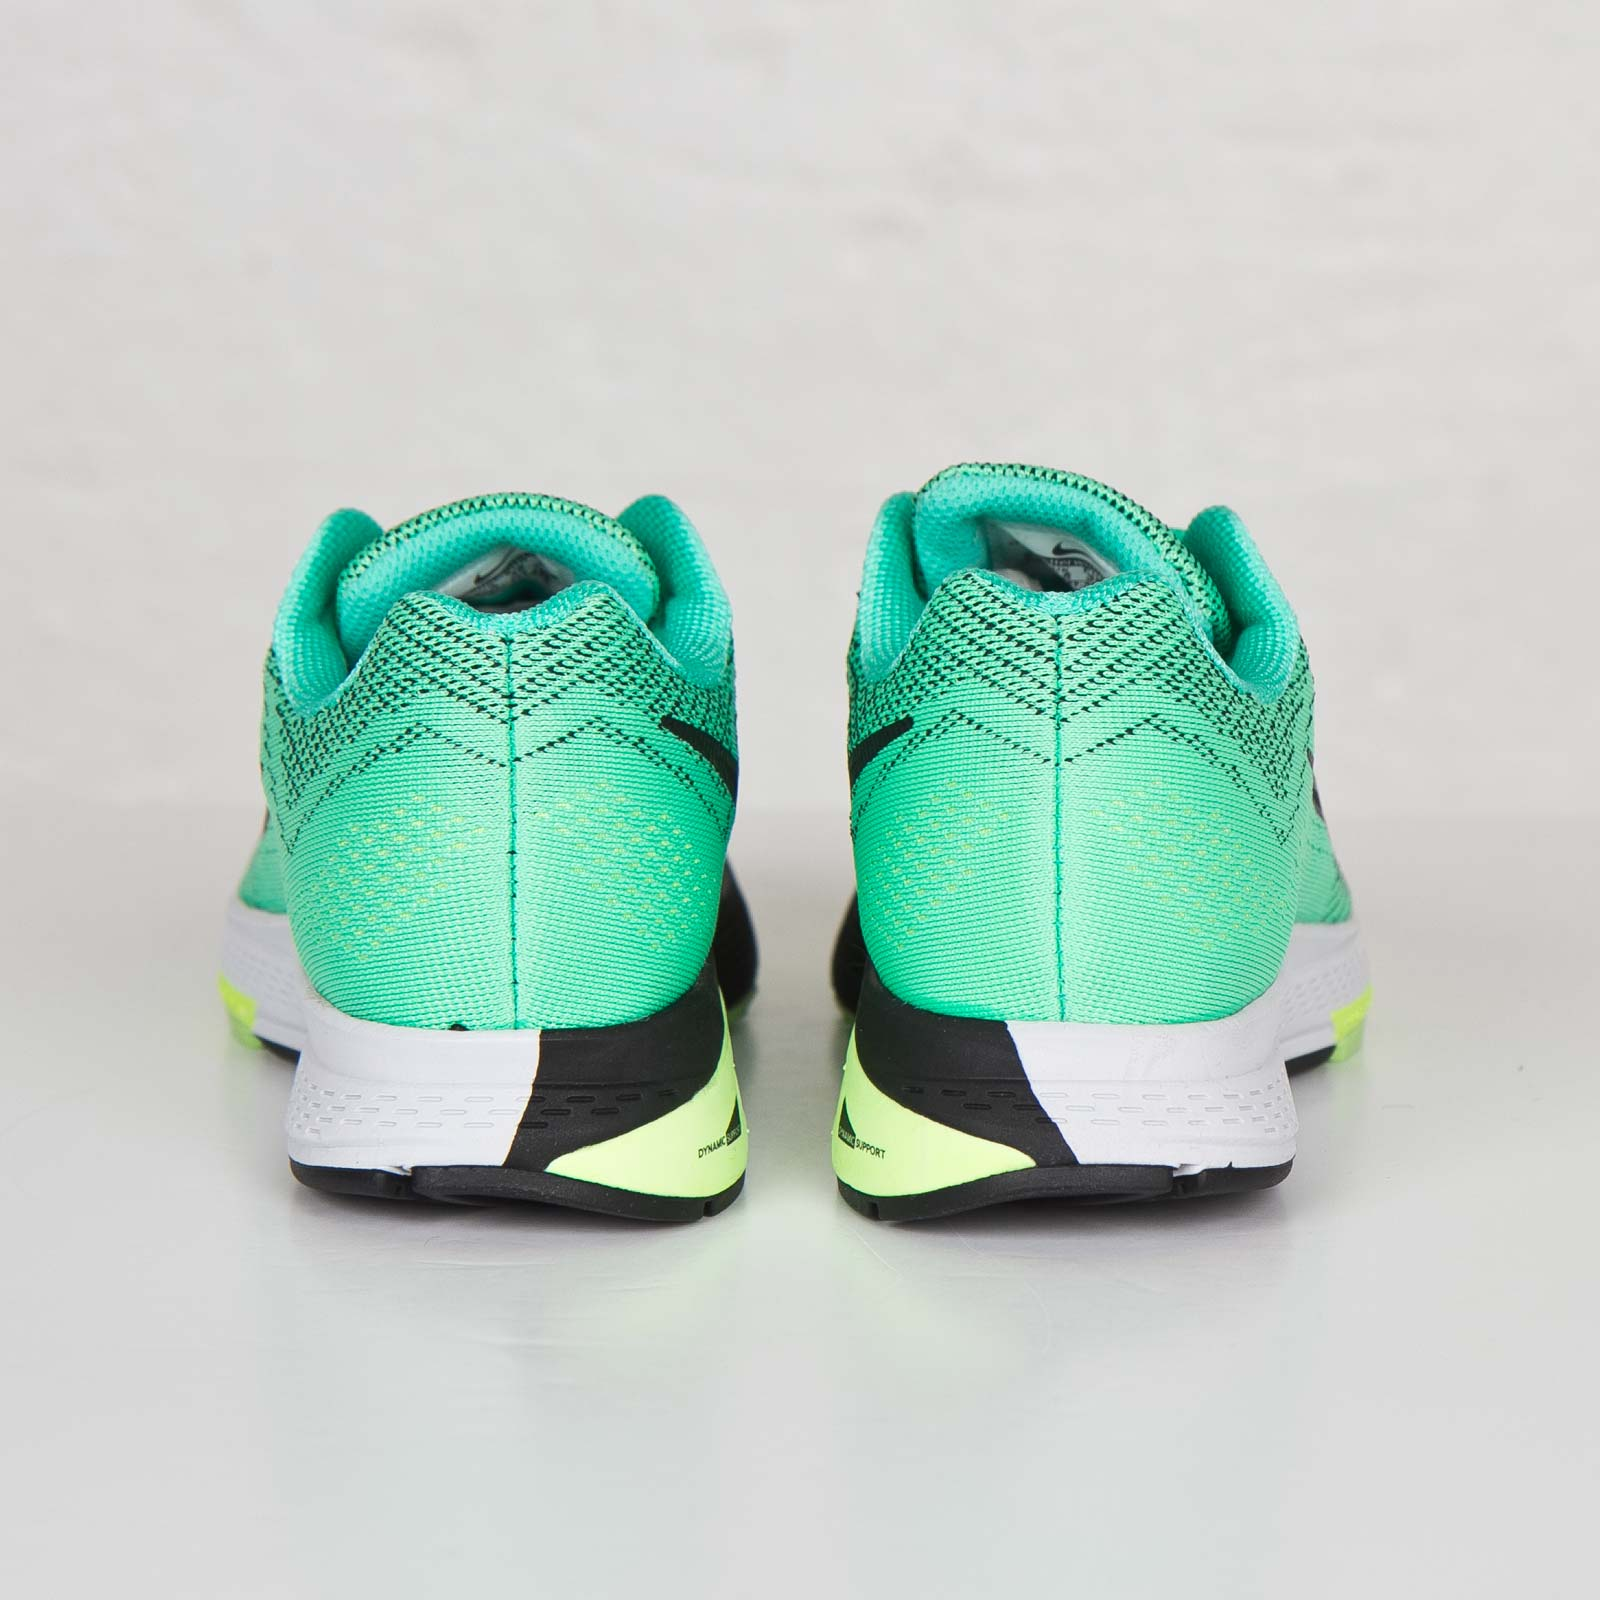 8d382ca93629 Nike Air Zoom Structure 18 - 683737-303 - Sneakersnstuff